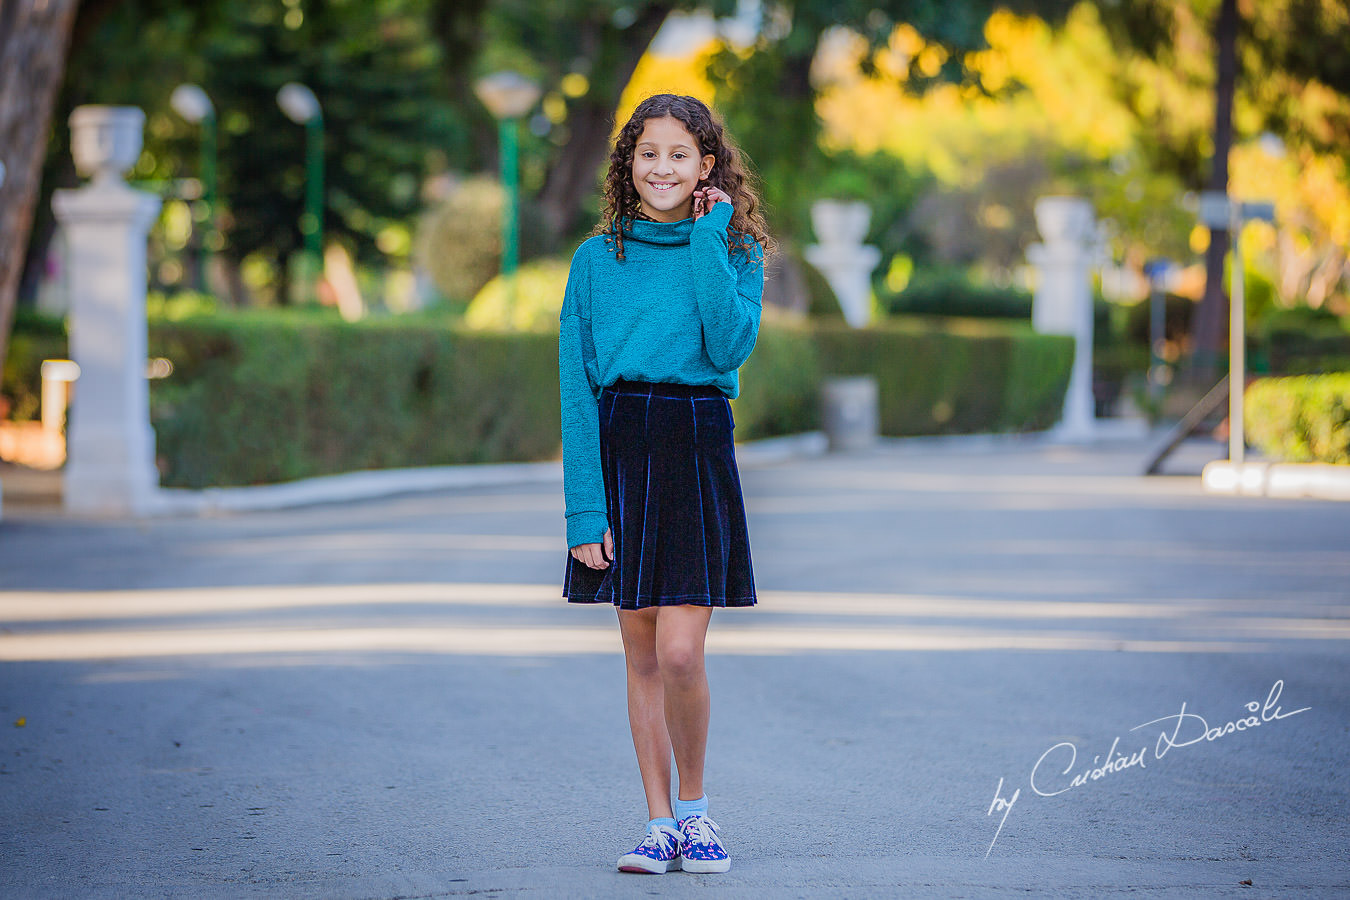 Beautiful young lady in the park, moments captured by Cristian Dascalu during a beautiful Limassol family photography photo session.